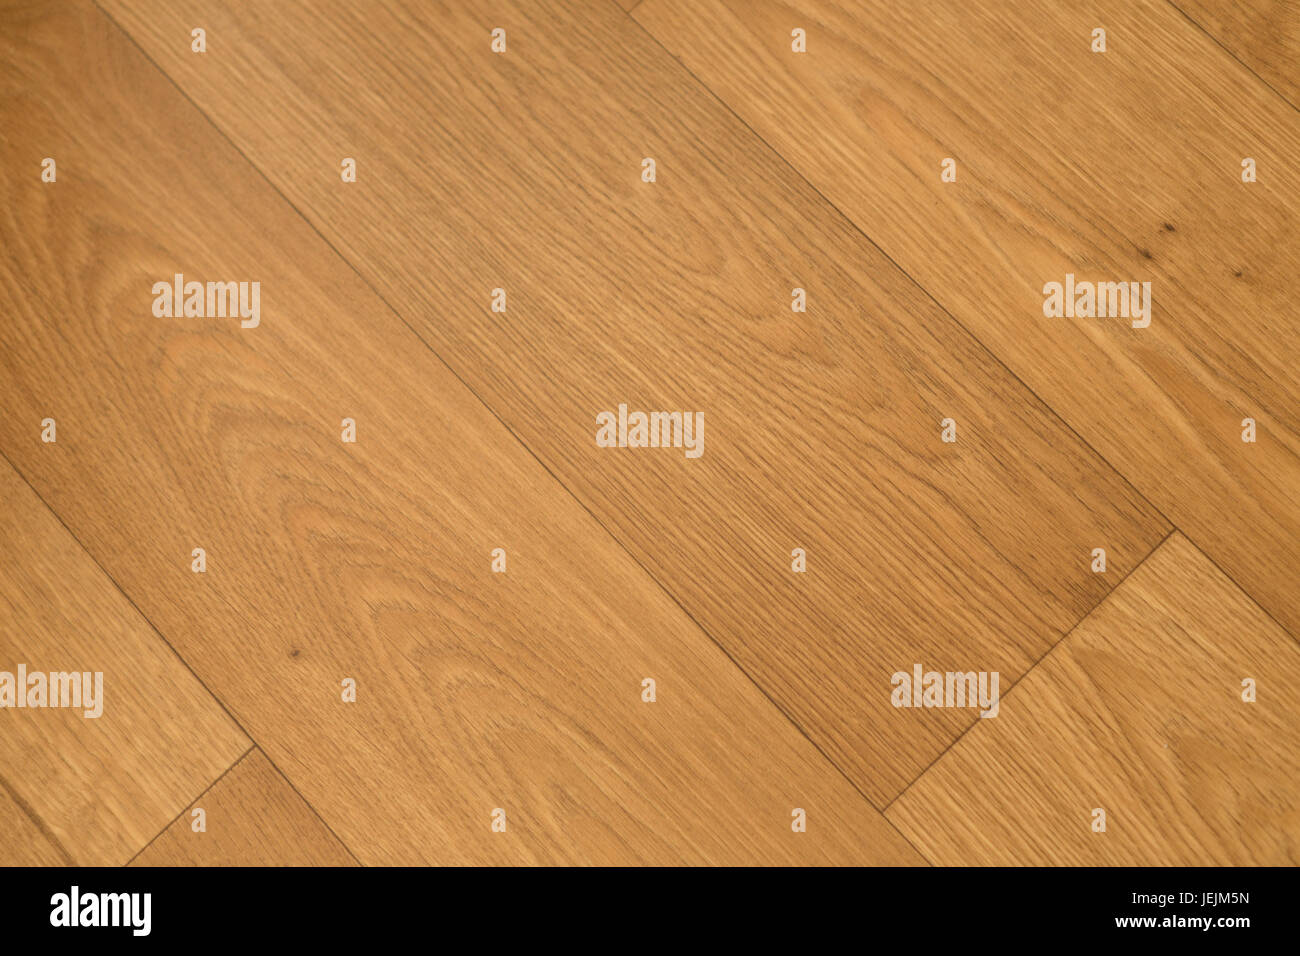 Linoleum Floor Stockfotos & Linoleum Floor Bilder - Alamy